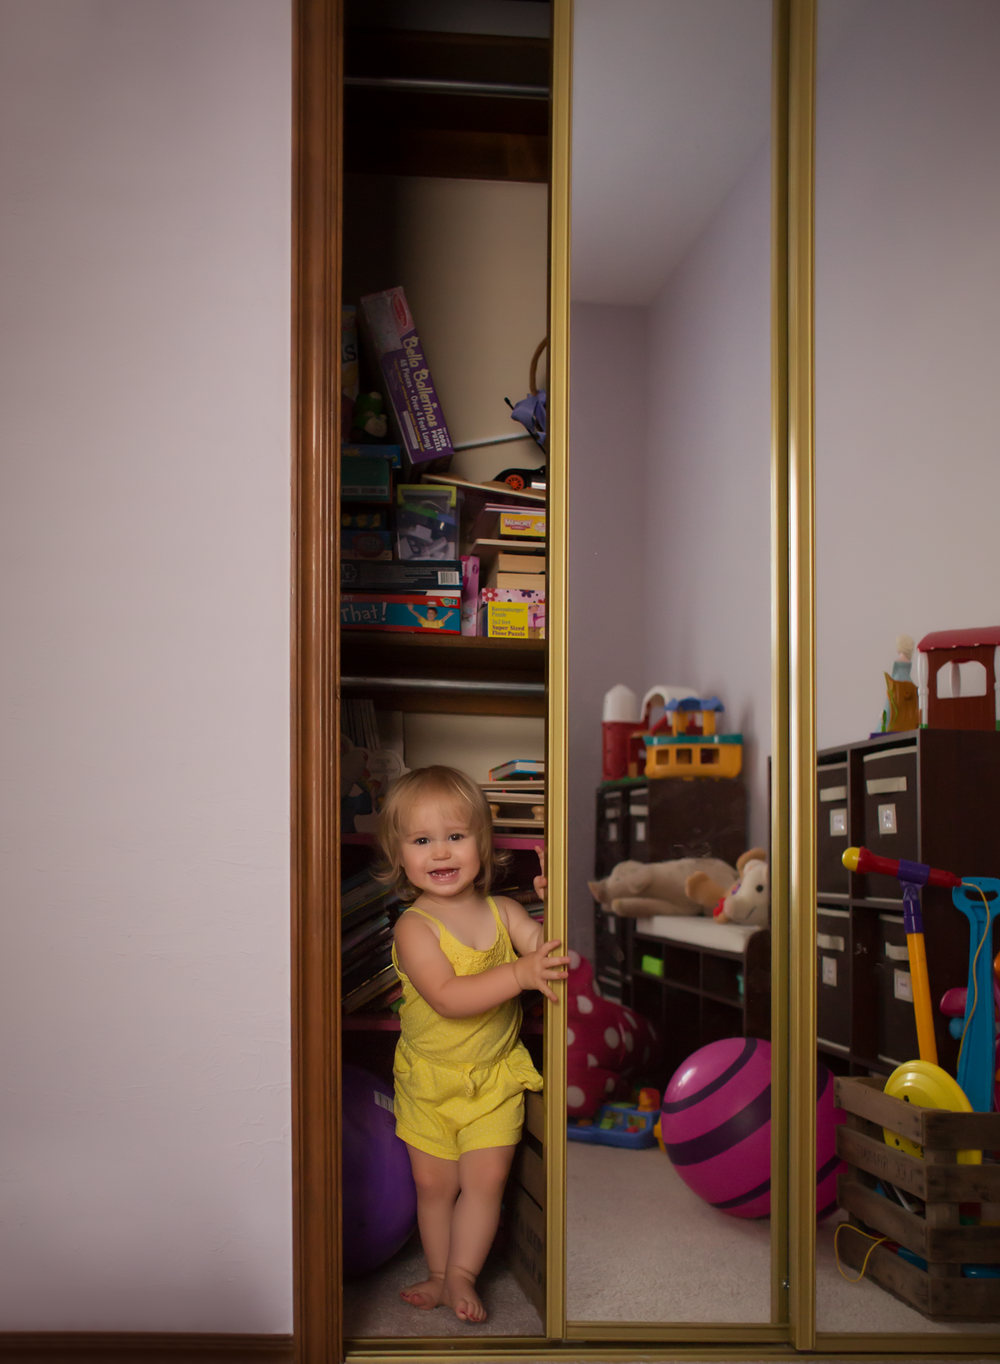 11 toddler girl peek a boo closet mirror play room house edmond ok photographer lifestyle portrait.png